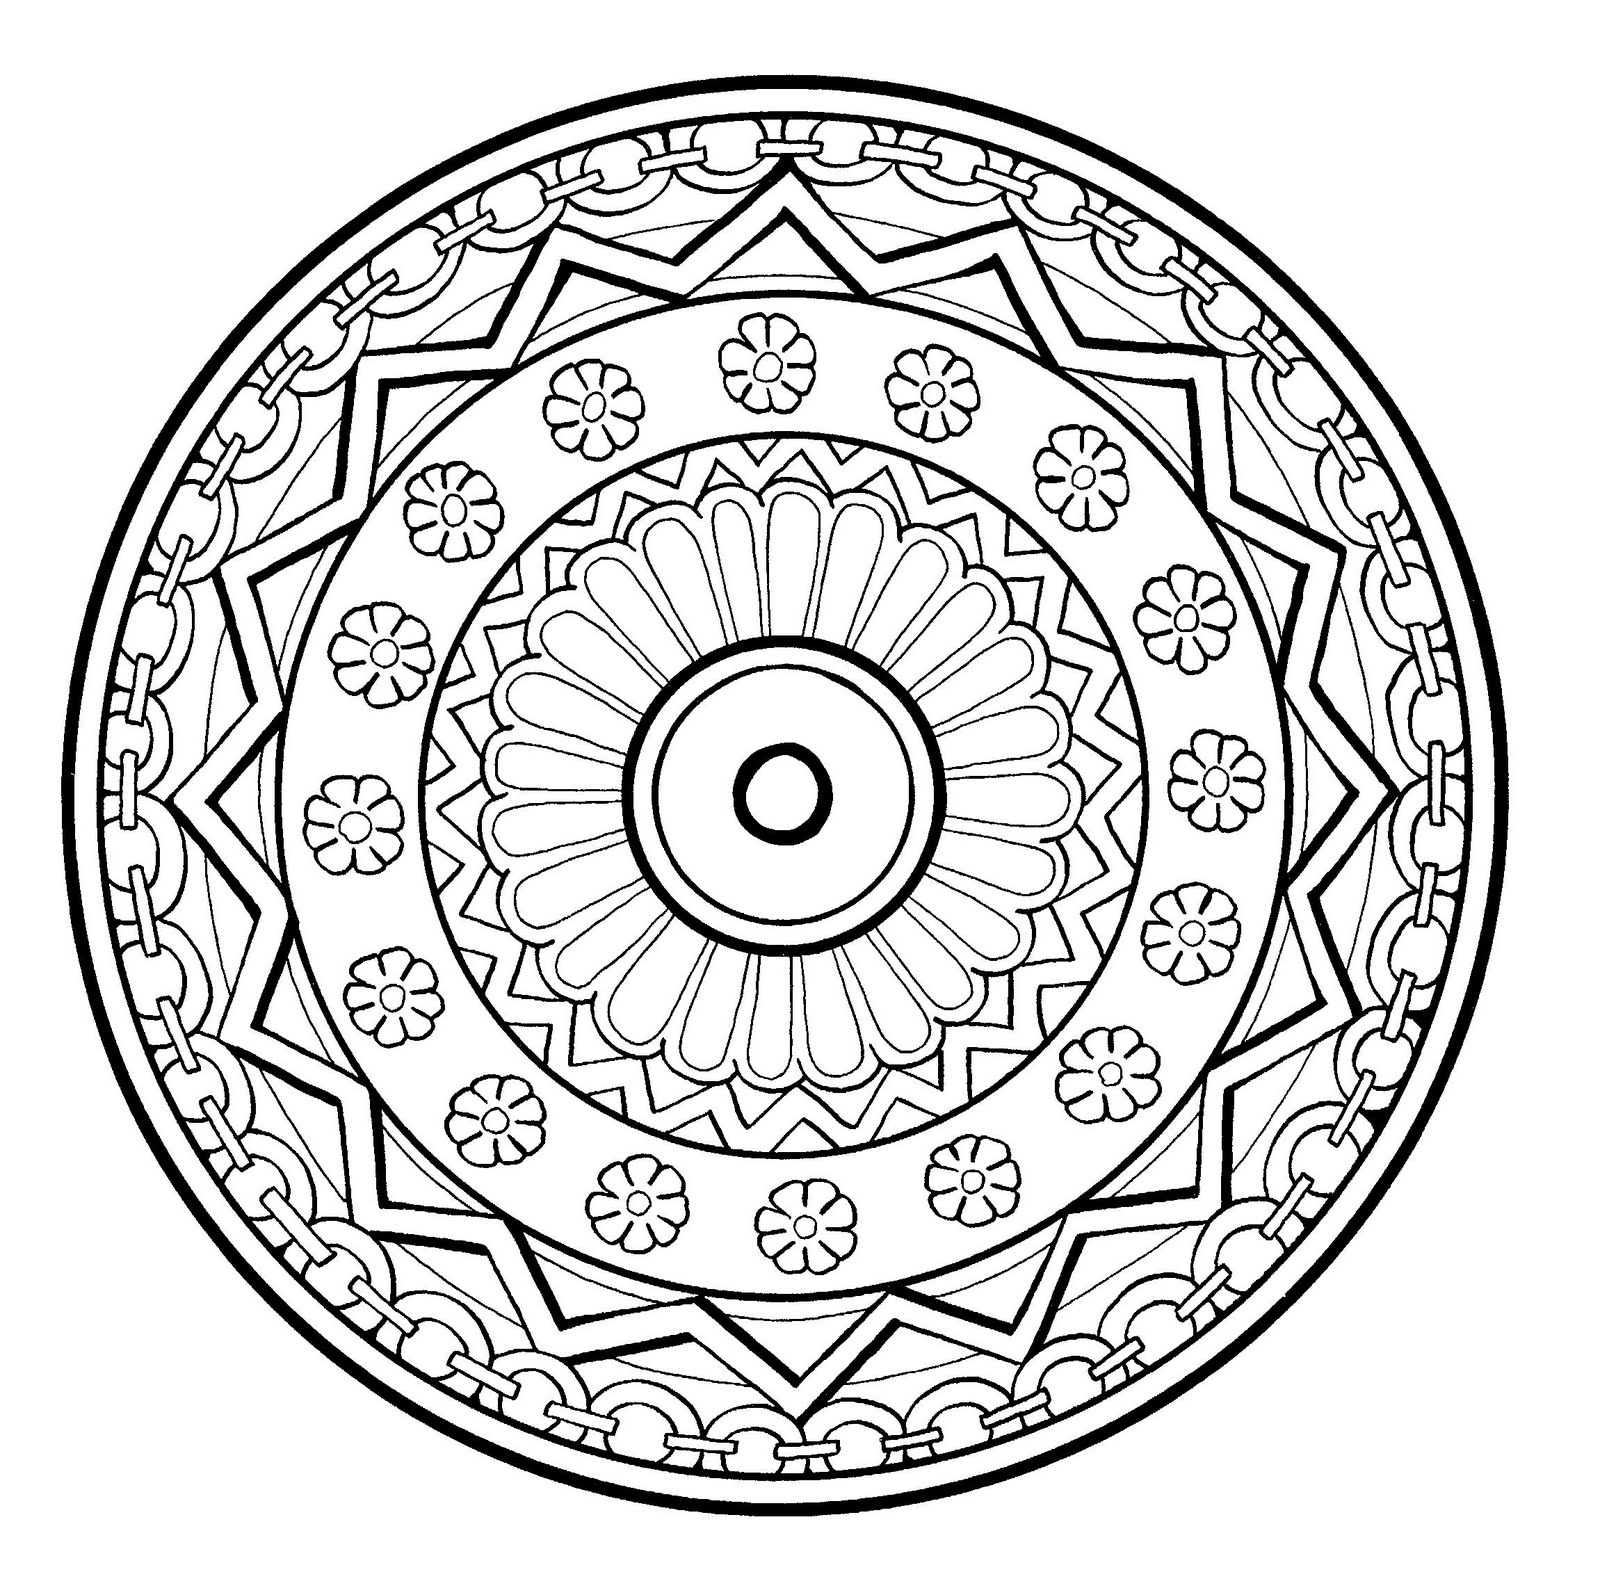 mandalas to color free flower mandala coloring pages printable at getdrawings to mandalas free color